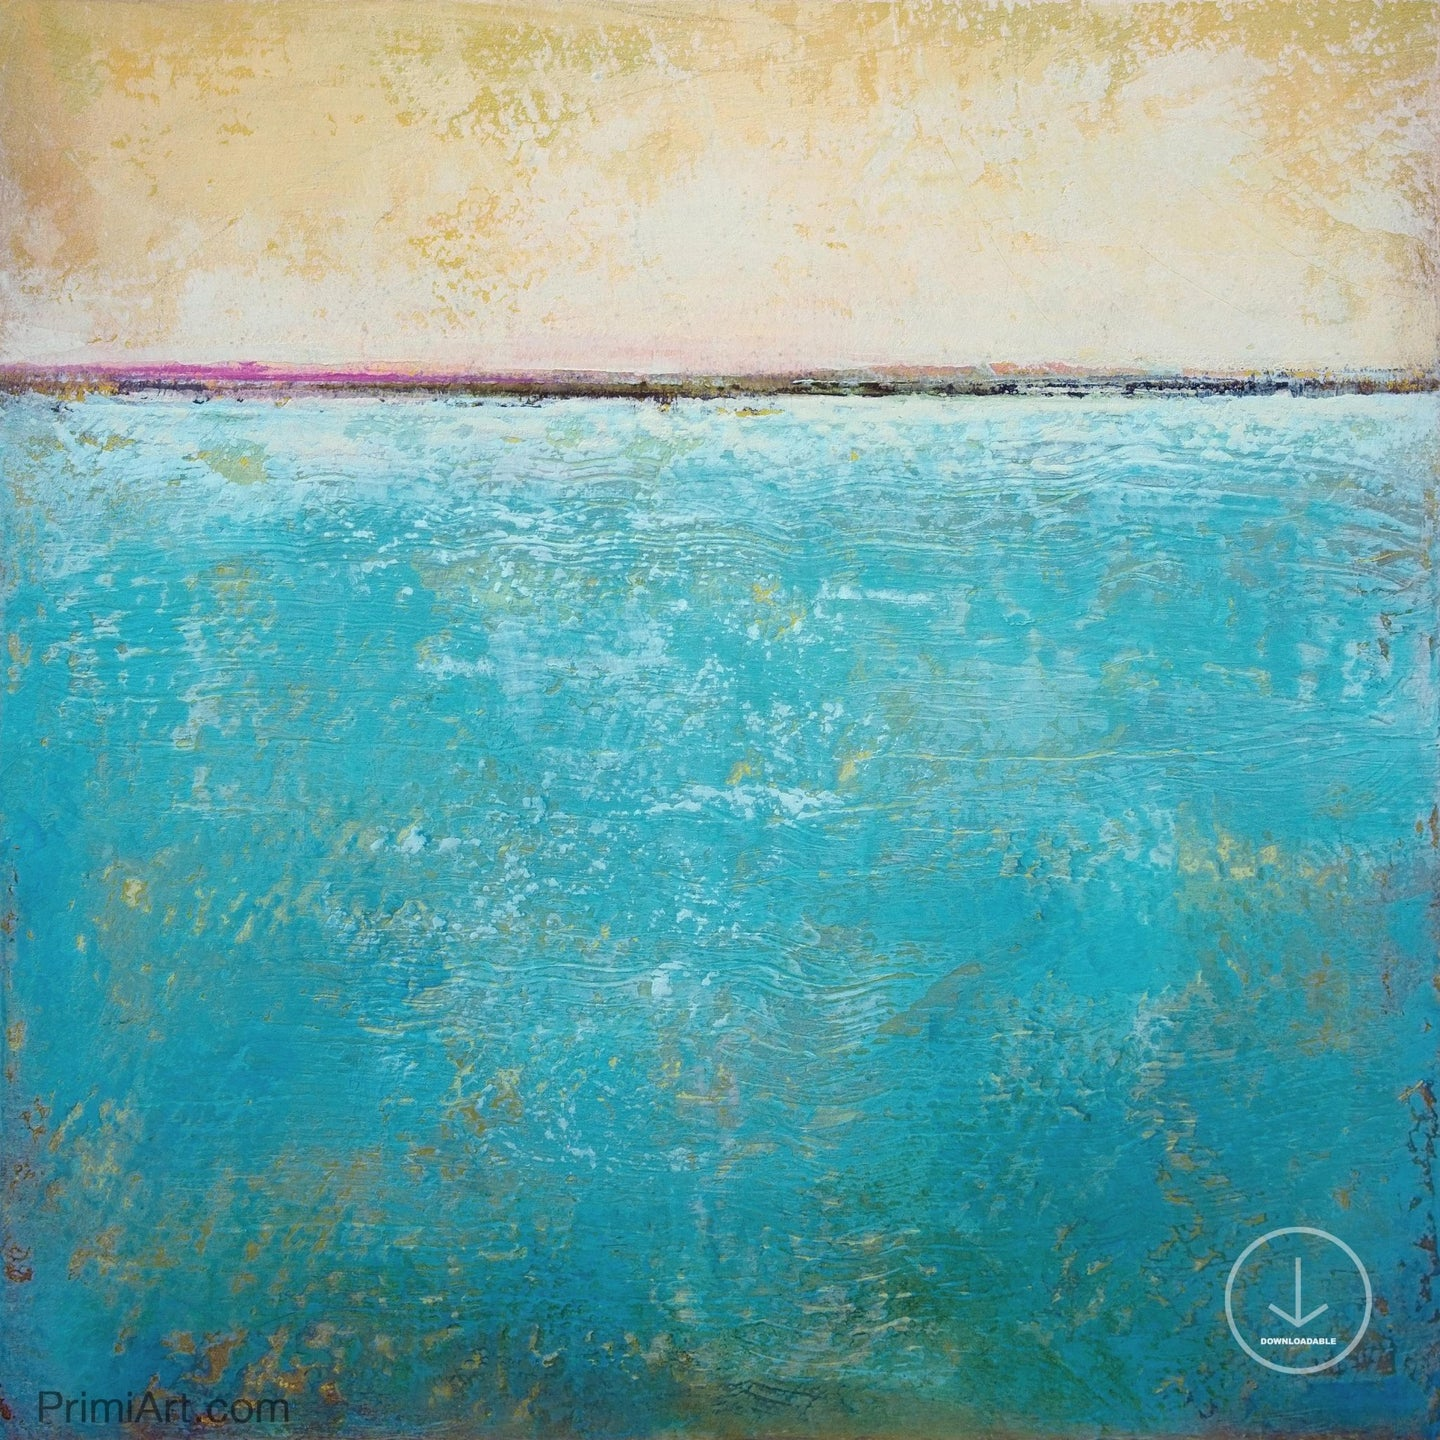 Teal coastal abstract beach artwork